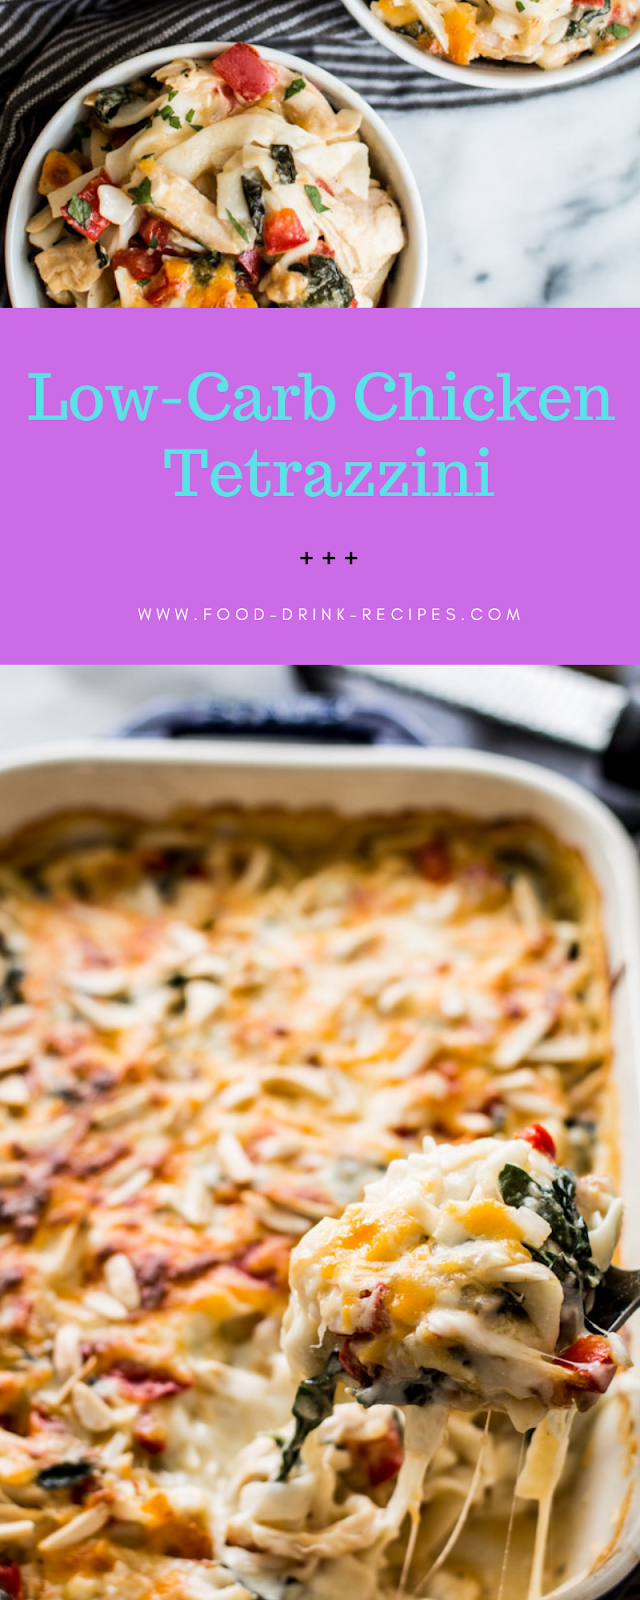 Low-Carb Chicken Tetrazzini